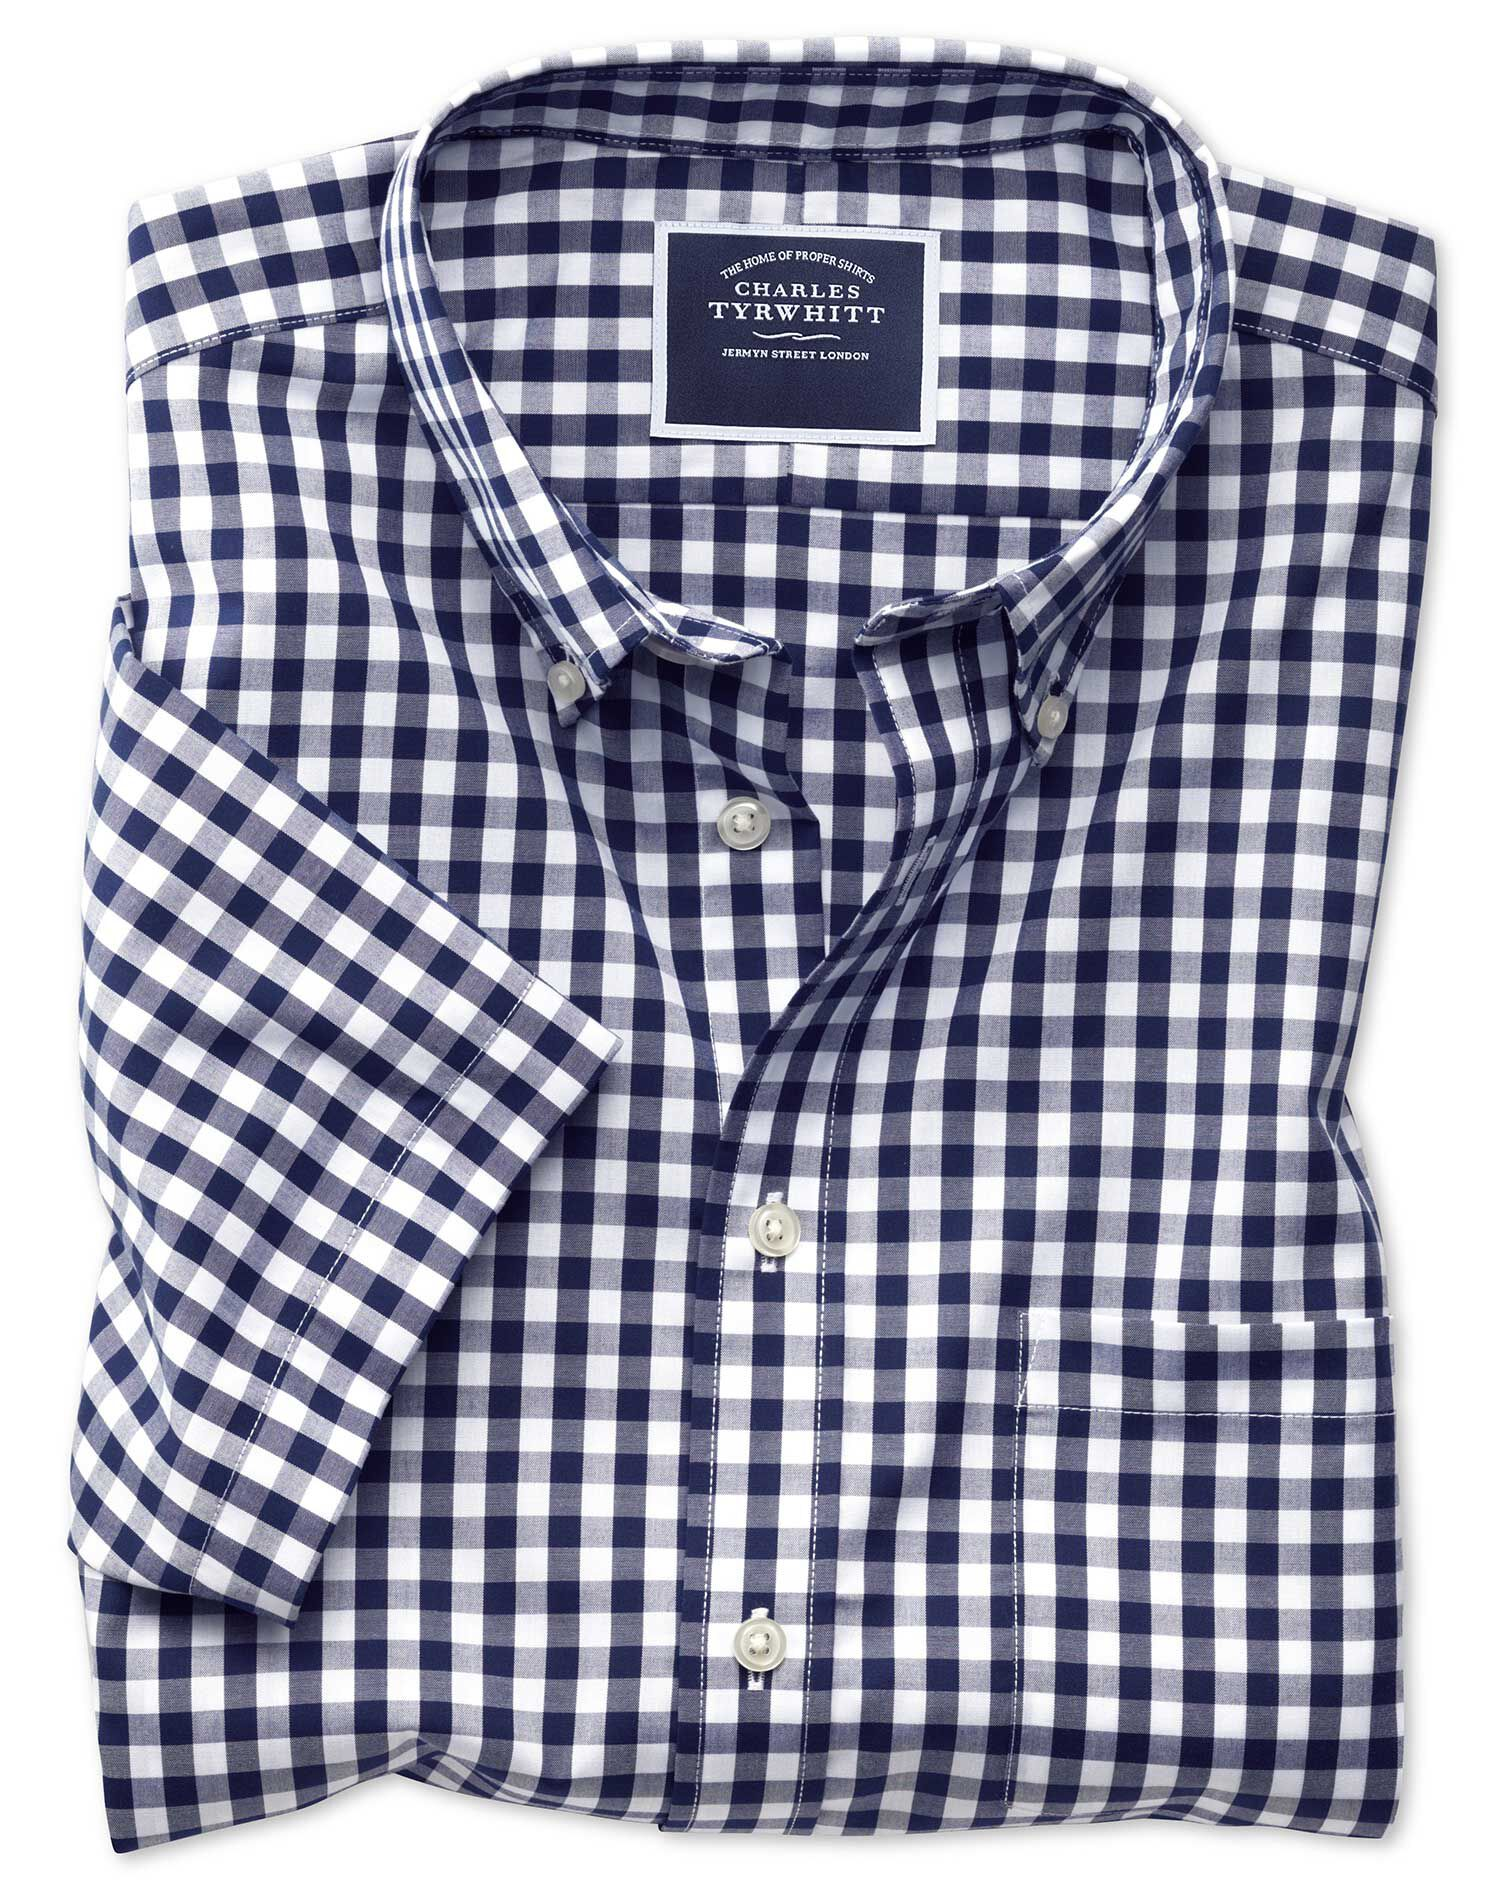 Classic Fit Button-Down Non-Iron Poplin Short Sleeve Navy Blue Gingham Cotton Shirt Single Cuff Size